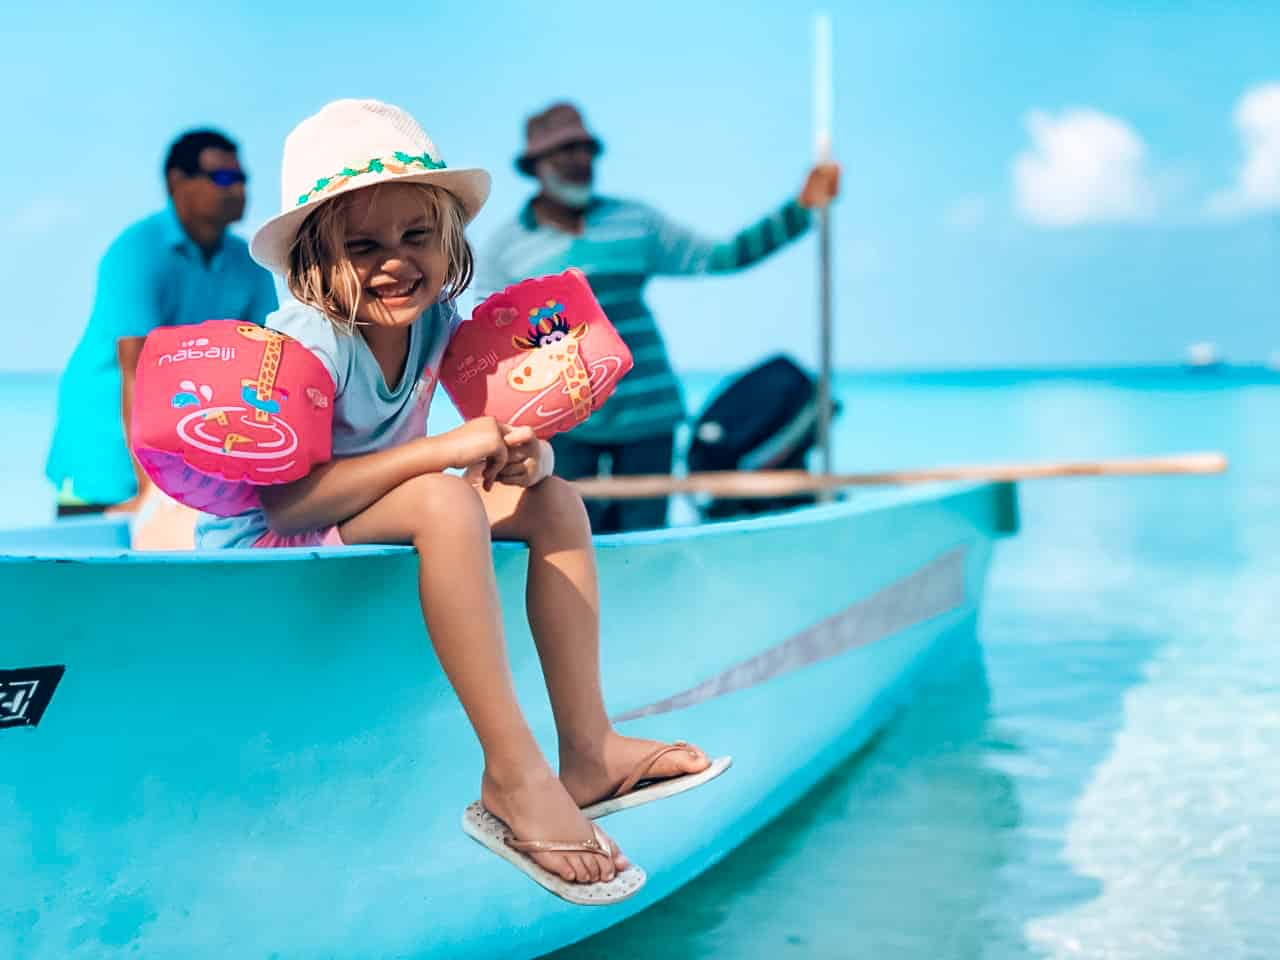 Family deal - Girl on a local dinghy ready for an excursion